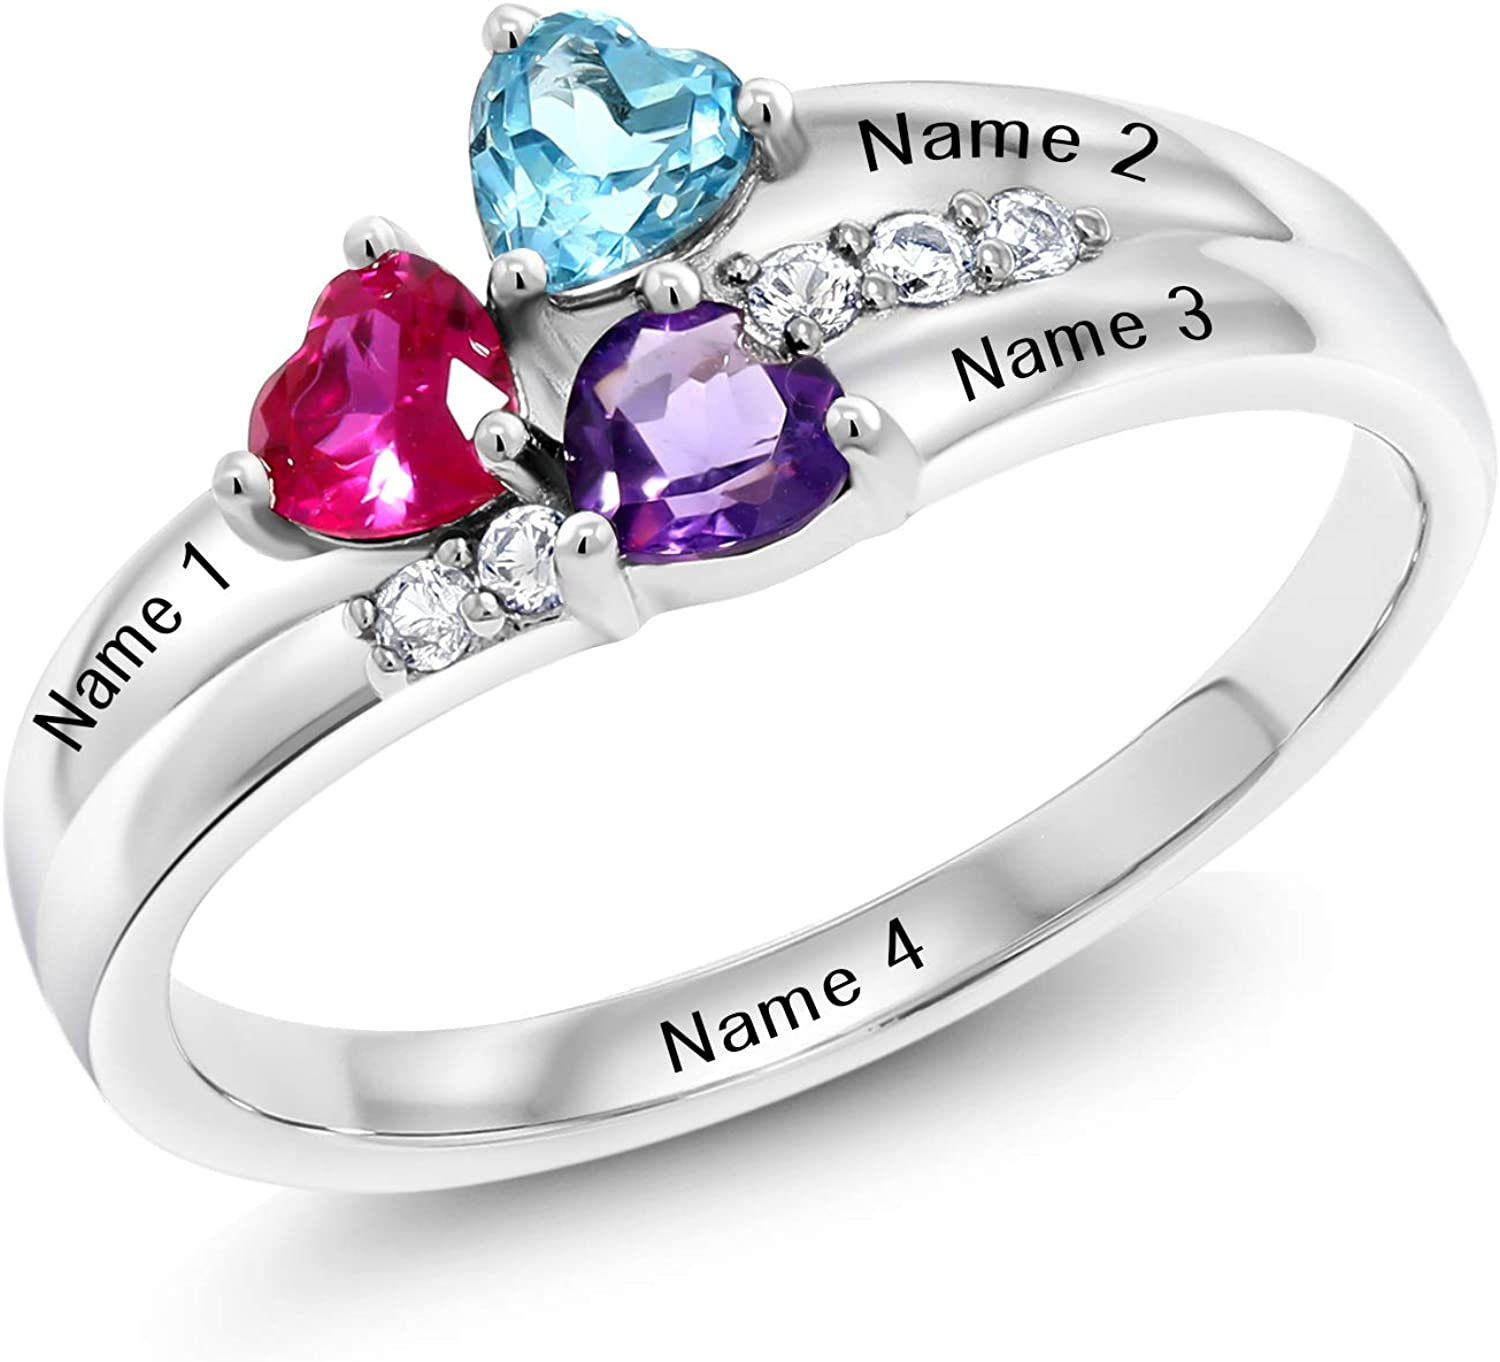 Beatiful Ring Genuine Sterling Silver 925 Nmae Ring Mum Sister Ring Names Ring 1 Or 2 Name Personalized Sterling Silver Women Gift Ring